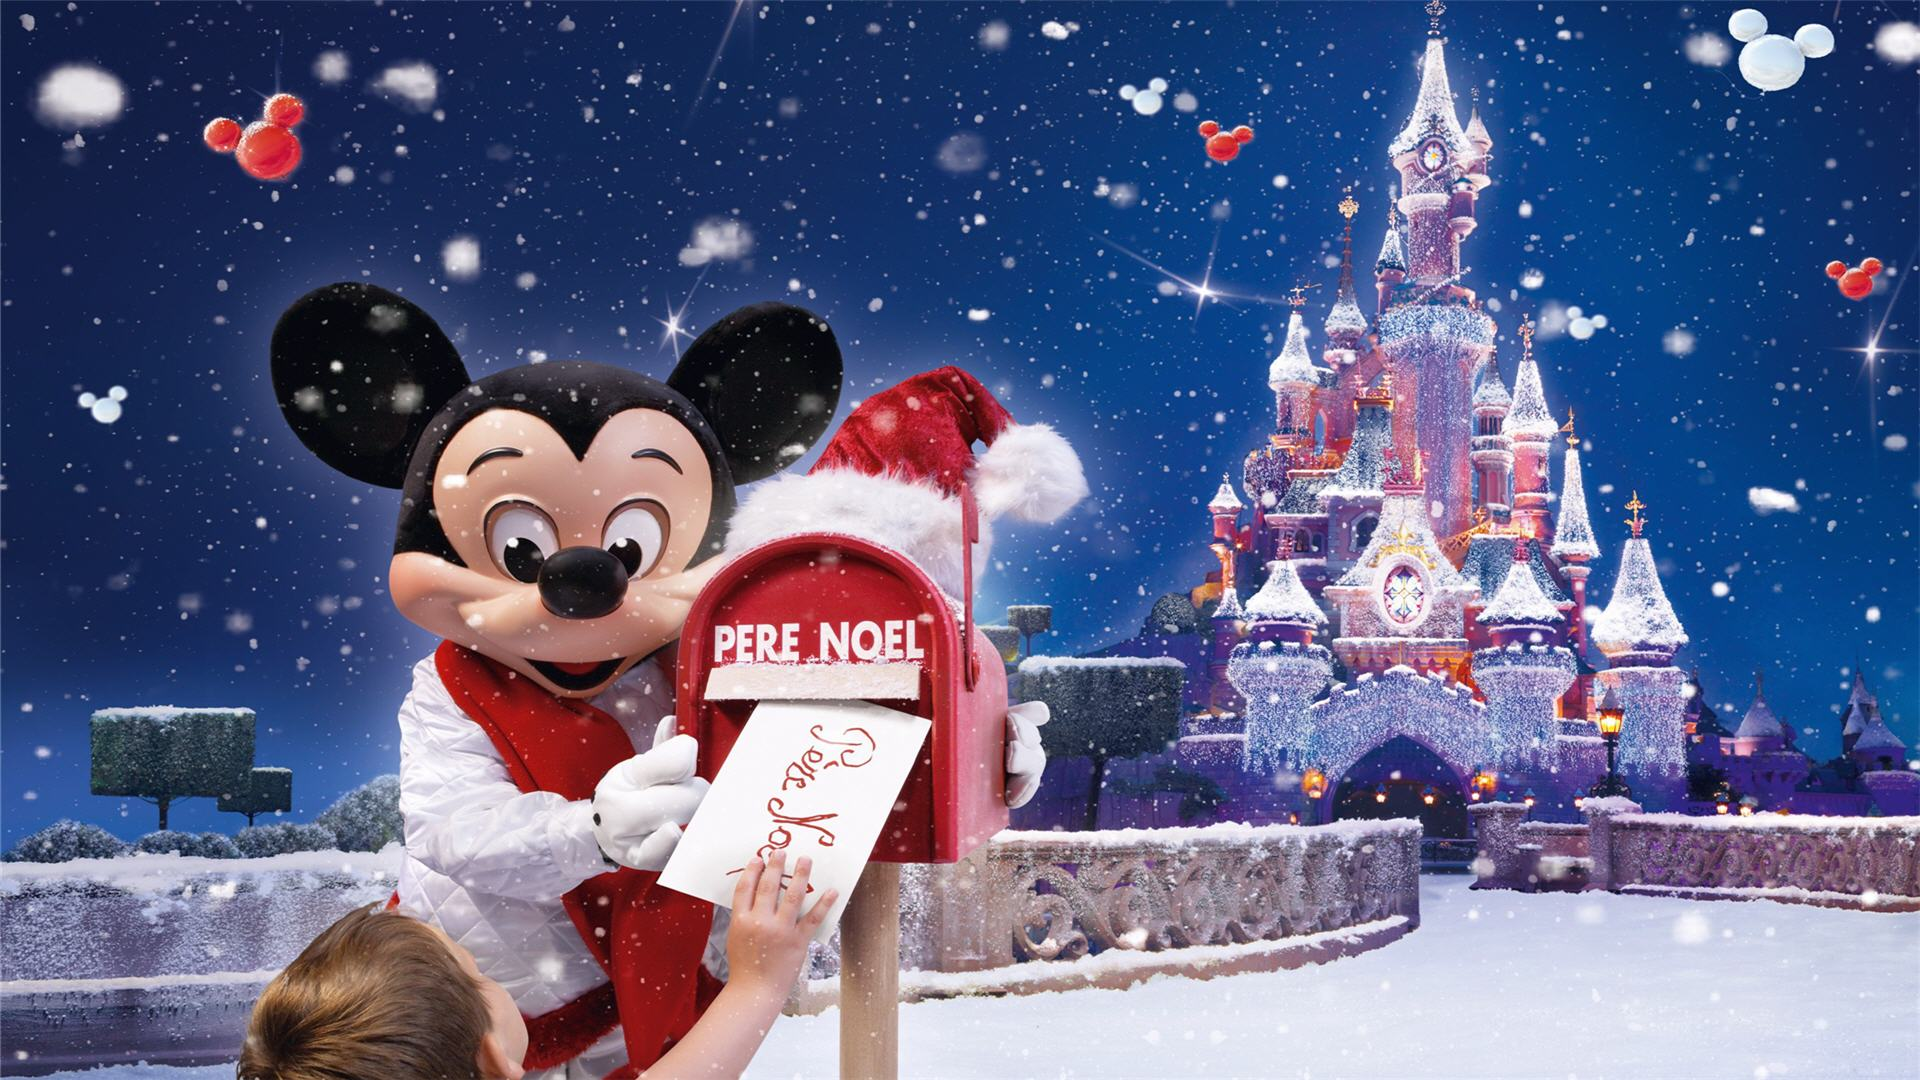 Wallpaper Christmas Disney wallpaper Desktop Wallpaper Christmas 1920x1080